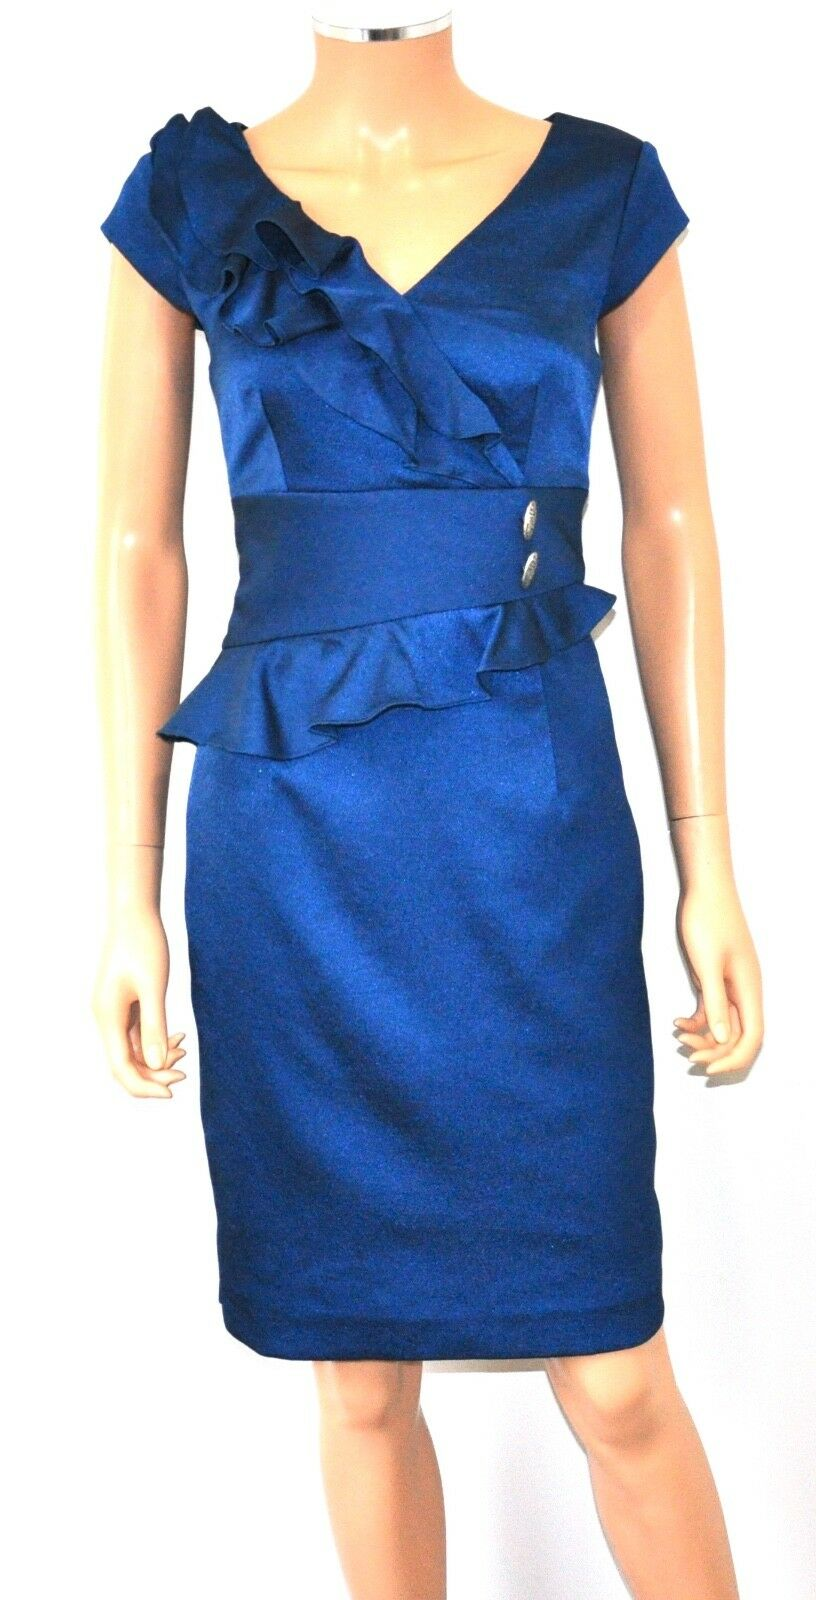 KAY UNGER Sapphire bluee Ruffled Peplum Cap Sleeve Shift Party Dress - 8, Small